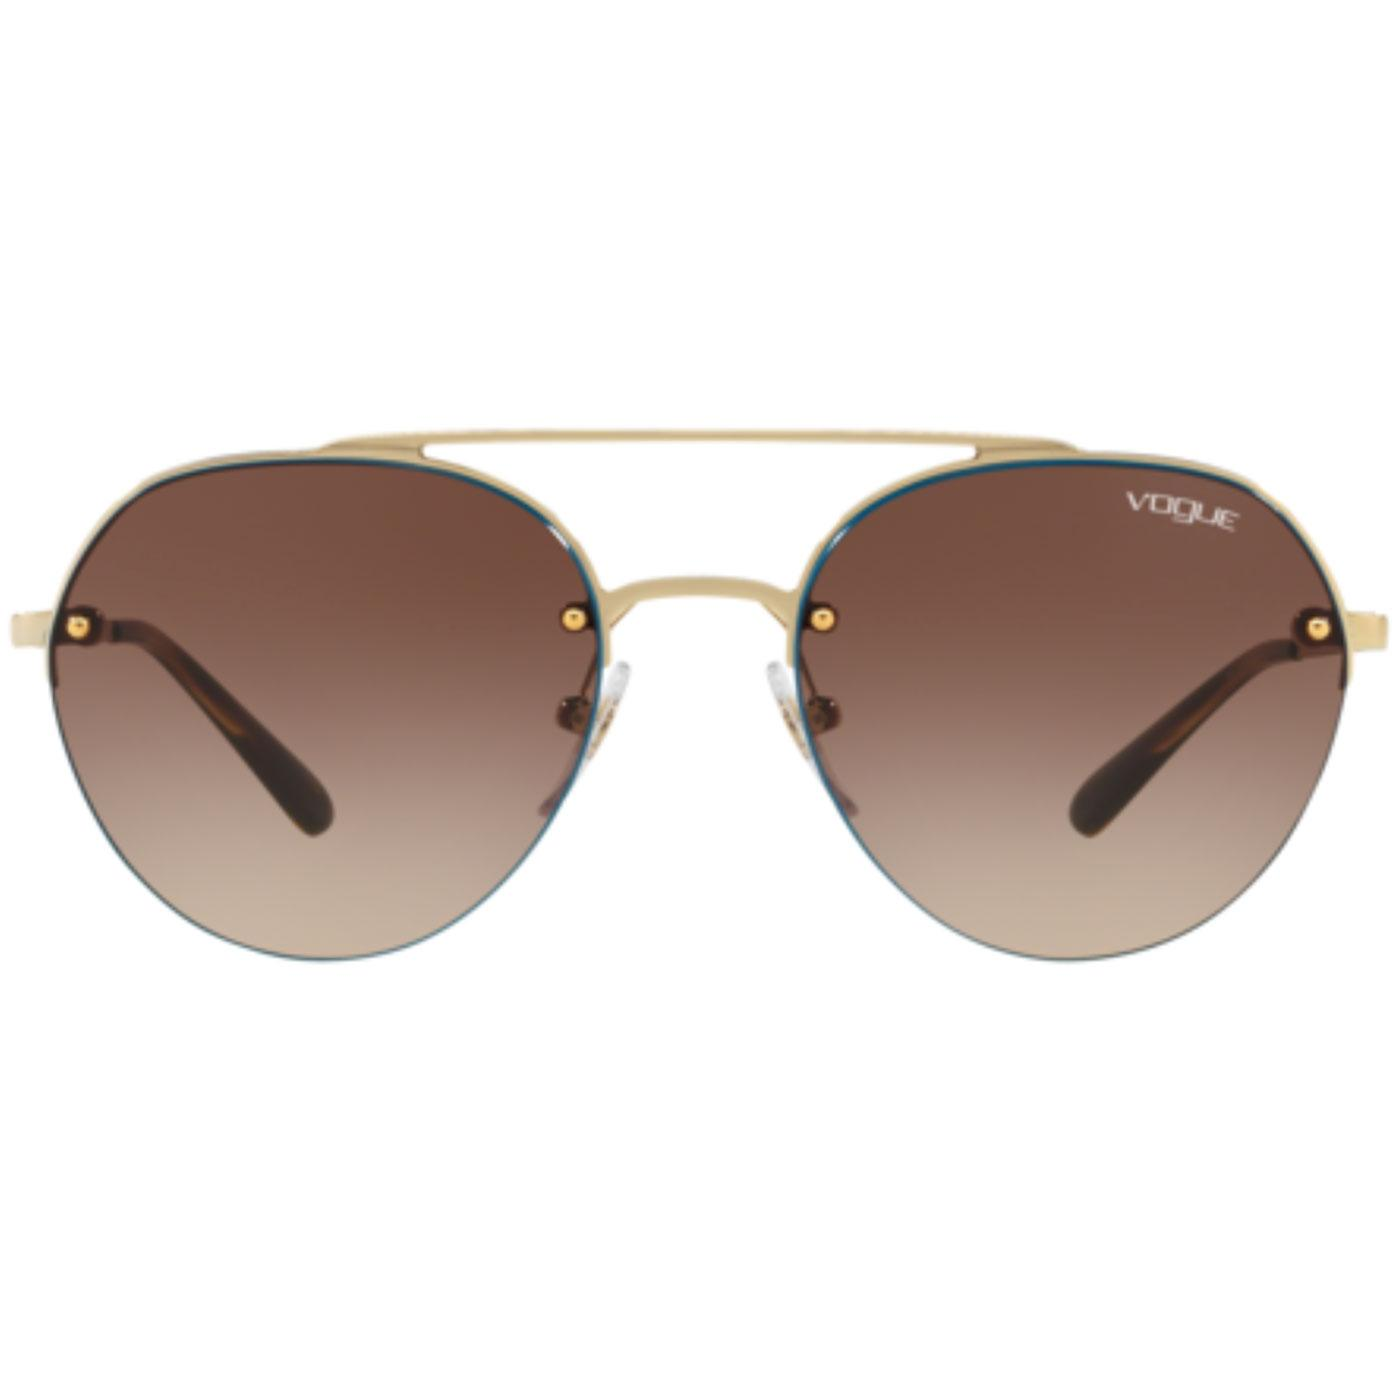 VOGUE Retro 70s Aviator Round Sunglasses Gold/Blue